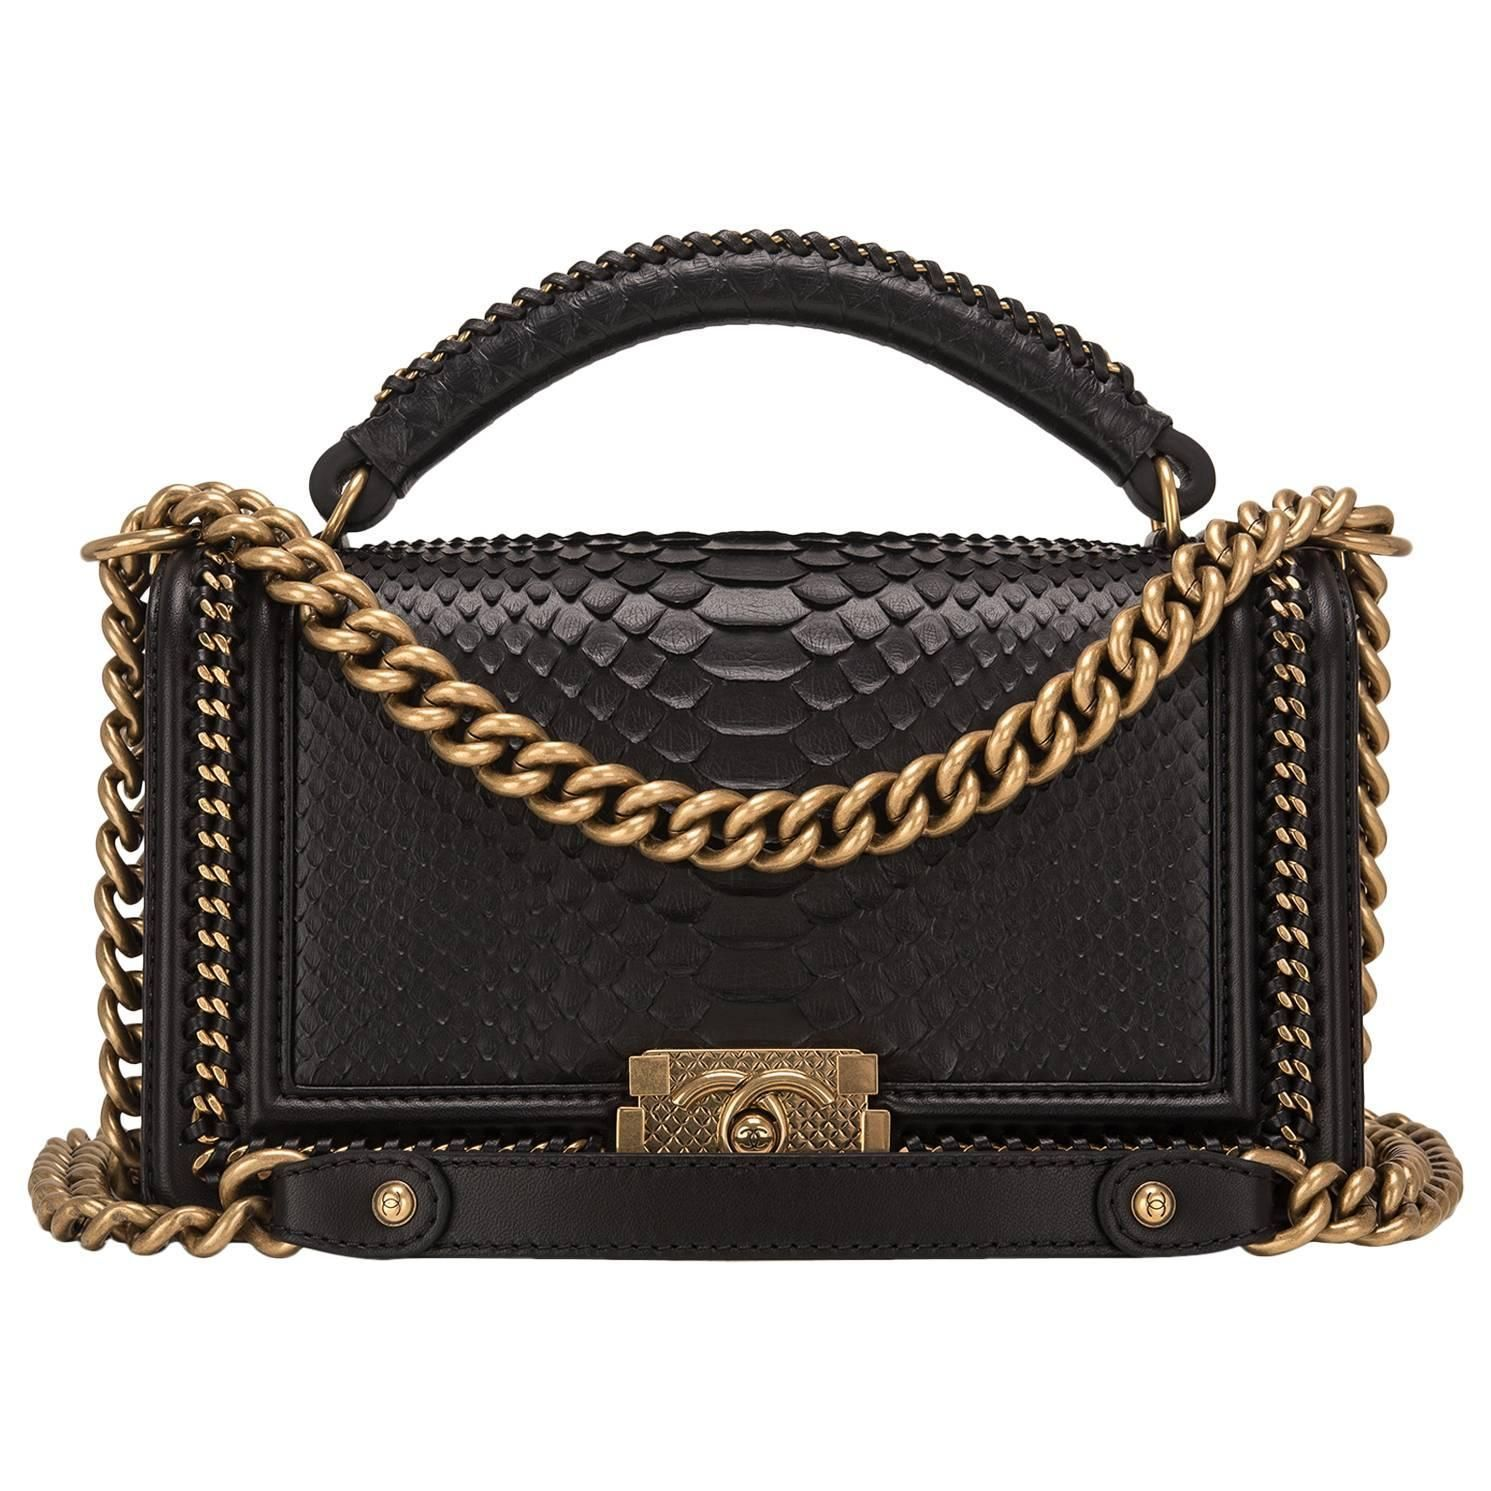 9c446fd05197 Chanel Black Python Medium Boy Bag with Handle